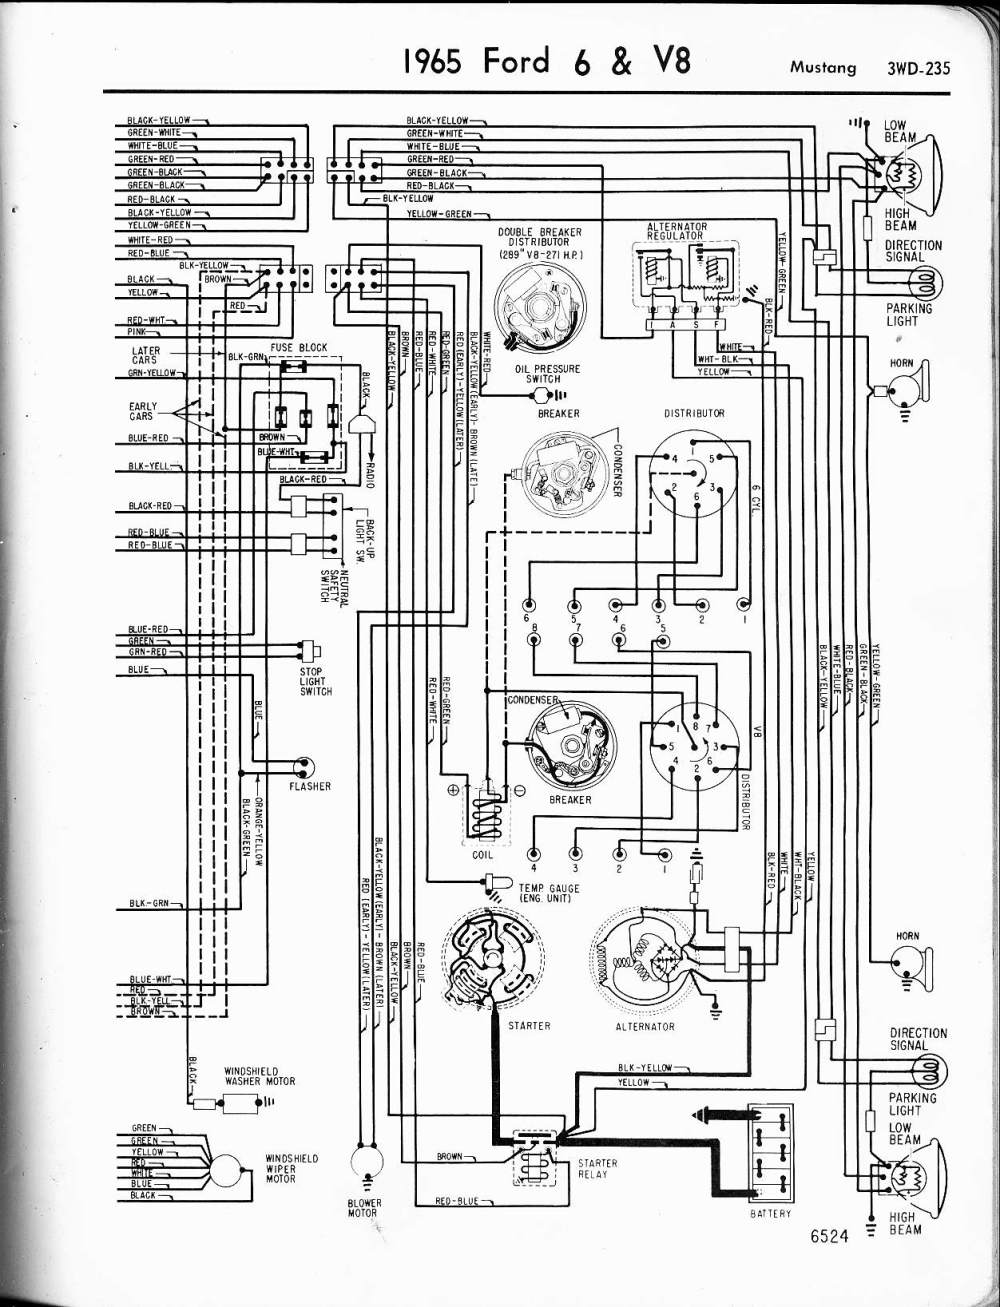 medium resolution of 69 thunderbird wiring diagram wiring diagrams scematic69 thunderbird wiring diagram wiring diagram todays 61 thunderbird 1969